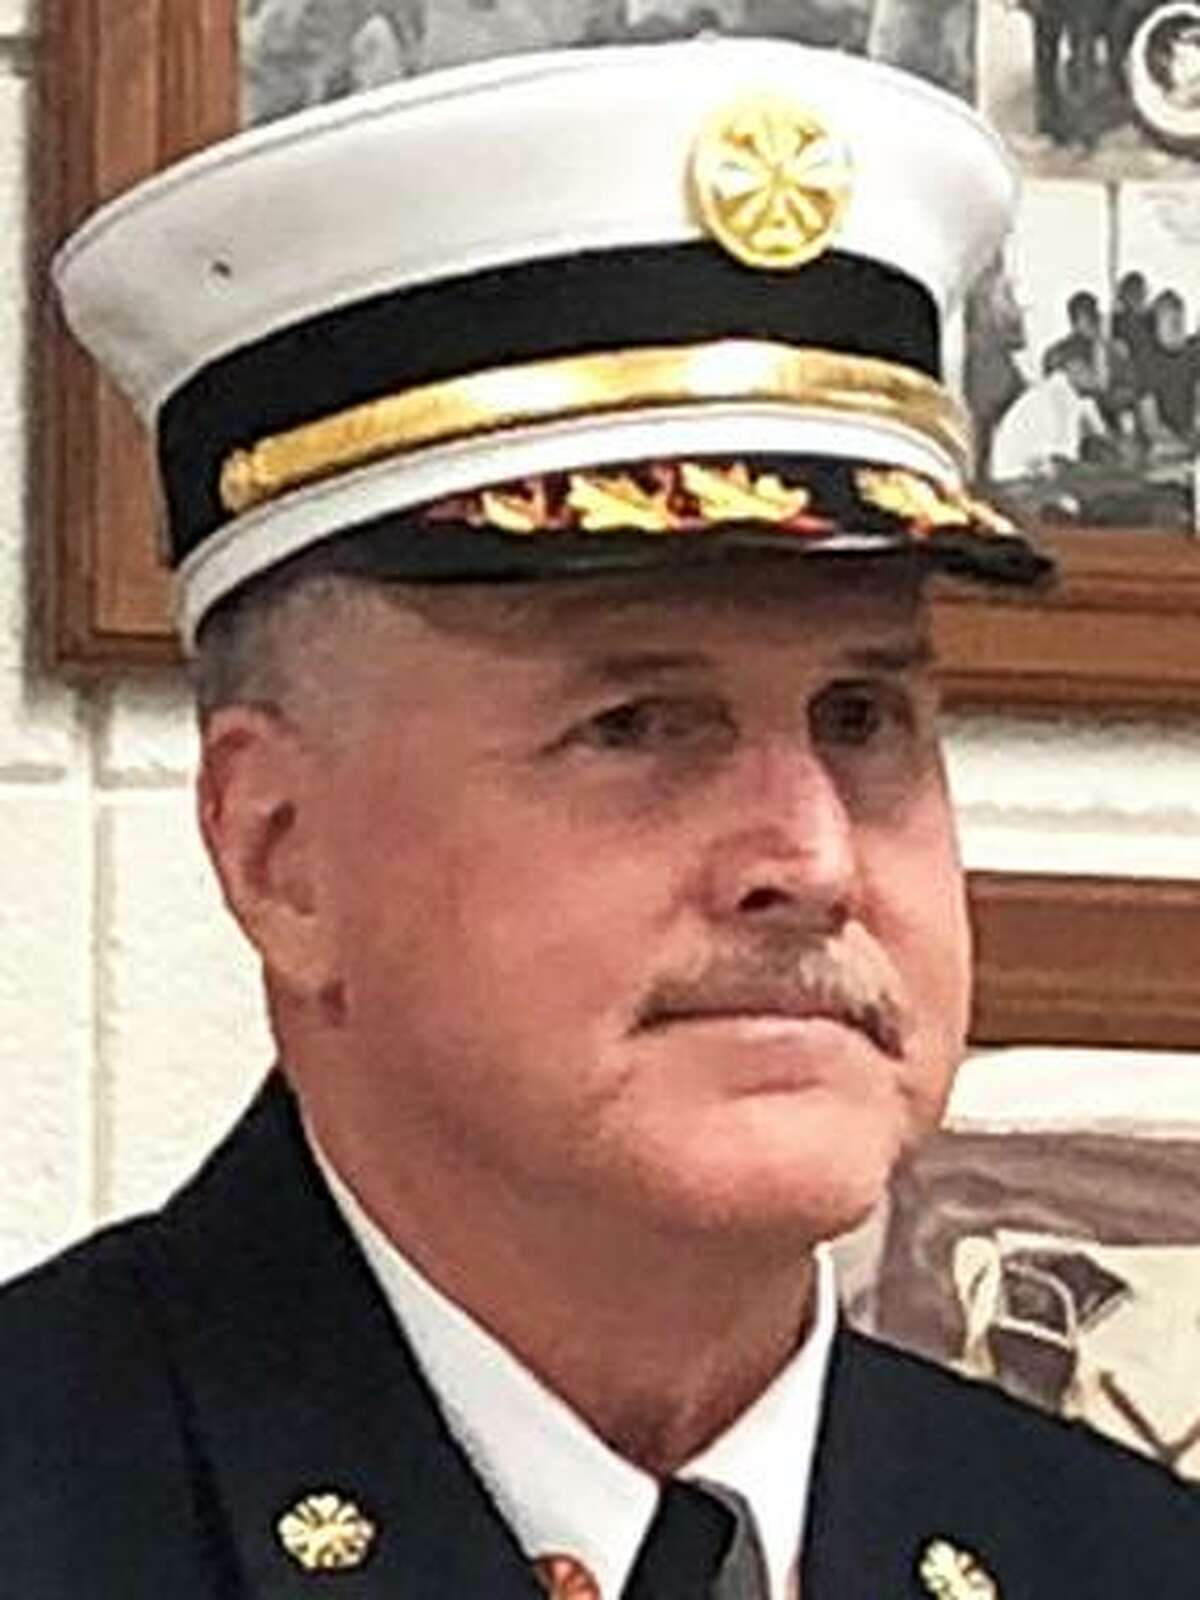 Waterford Director of Fire Services Michael Howley